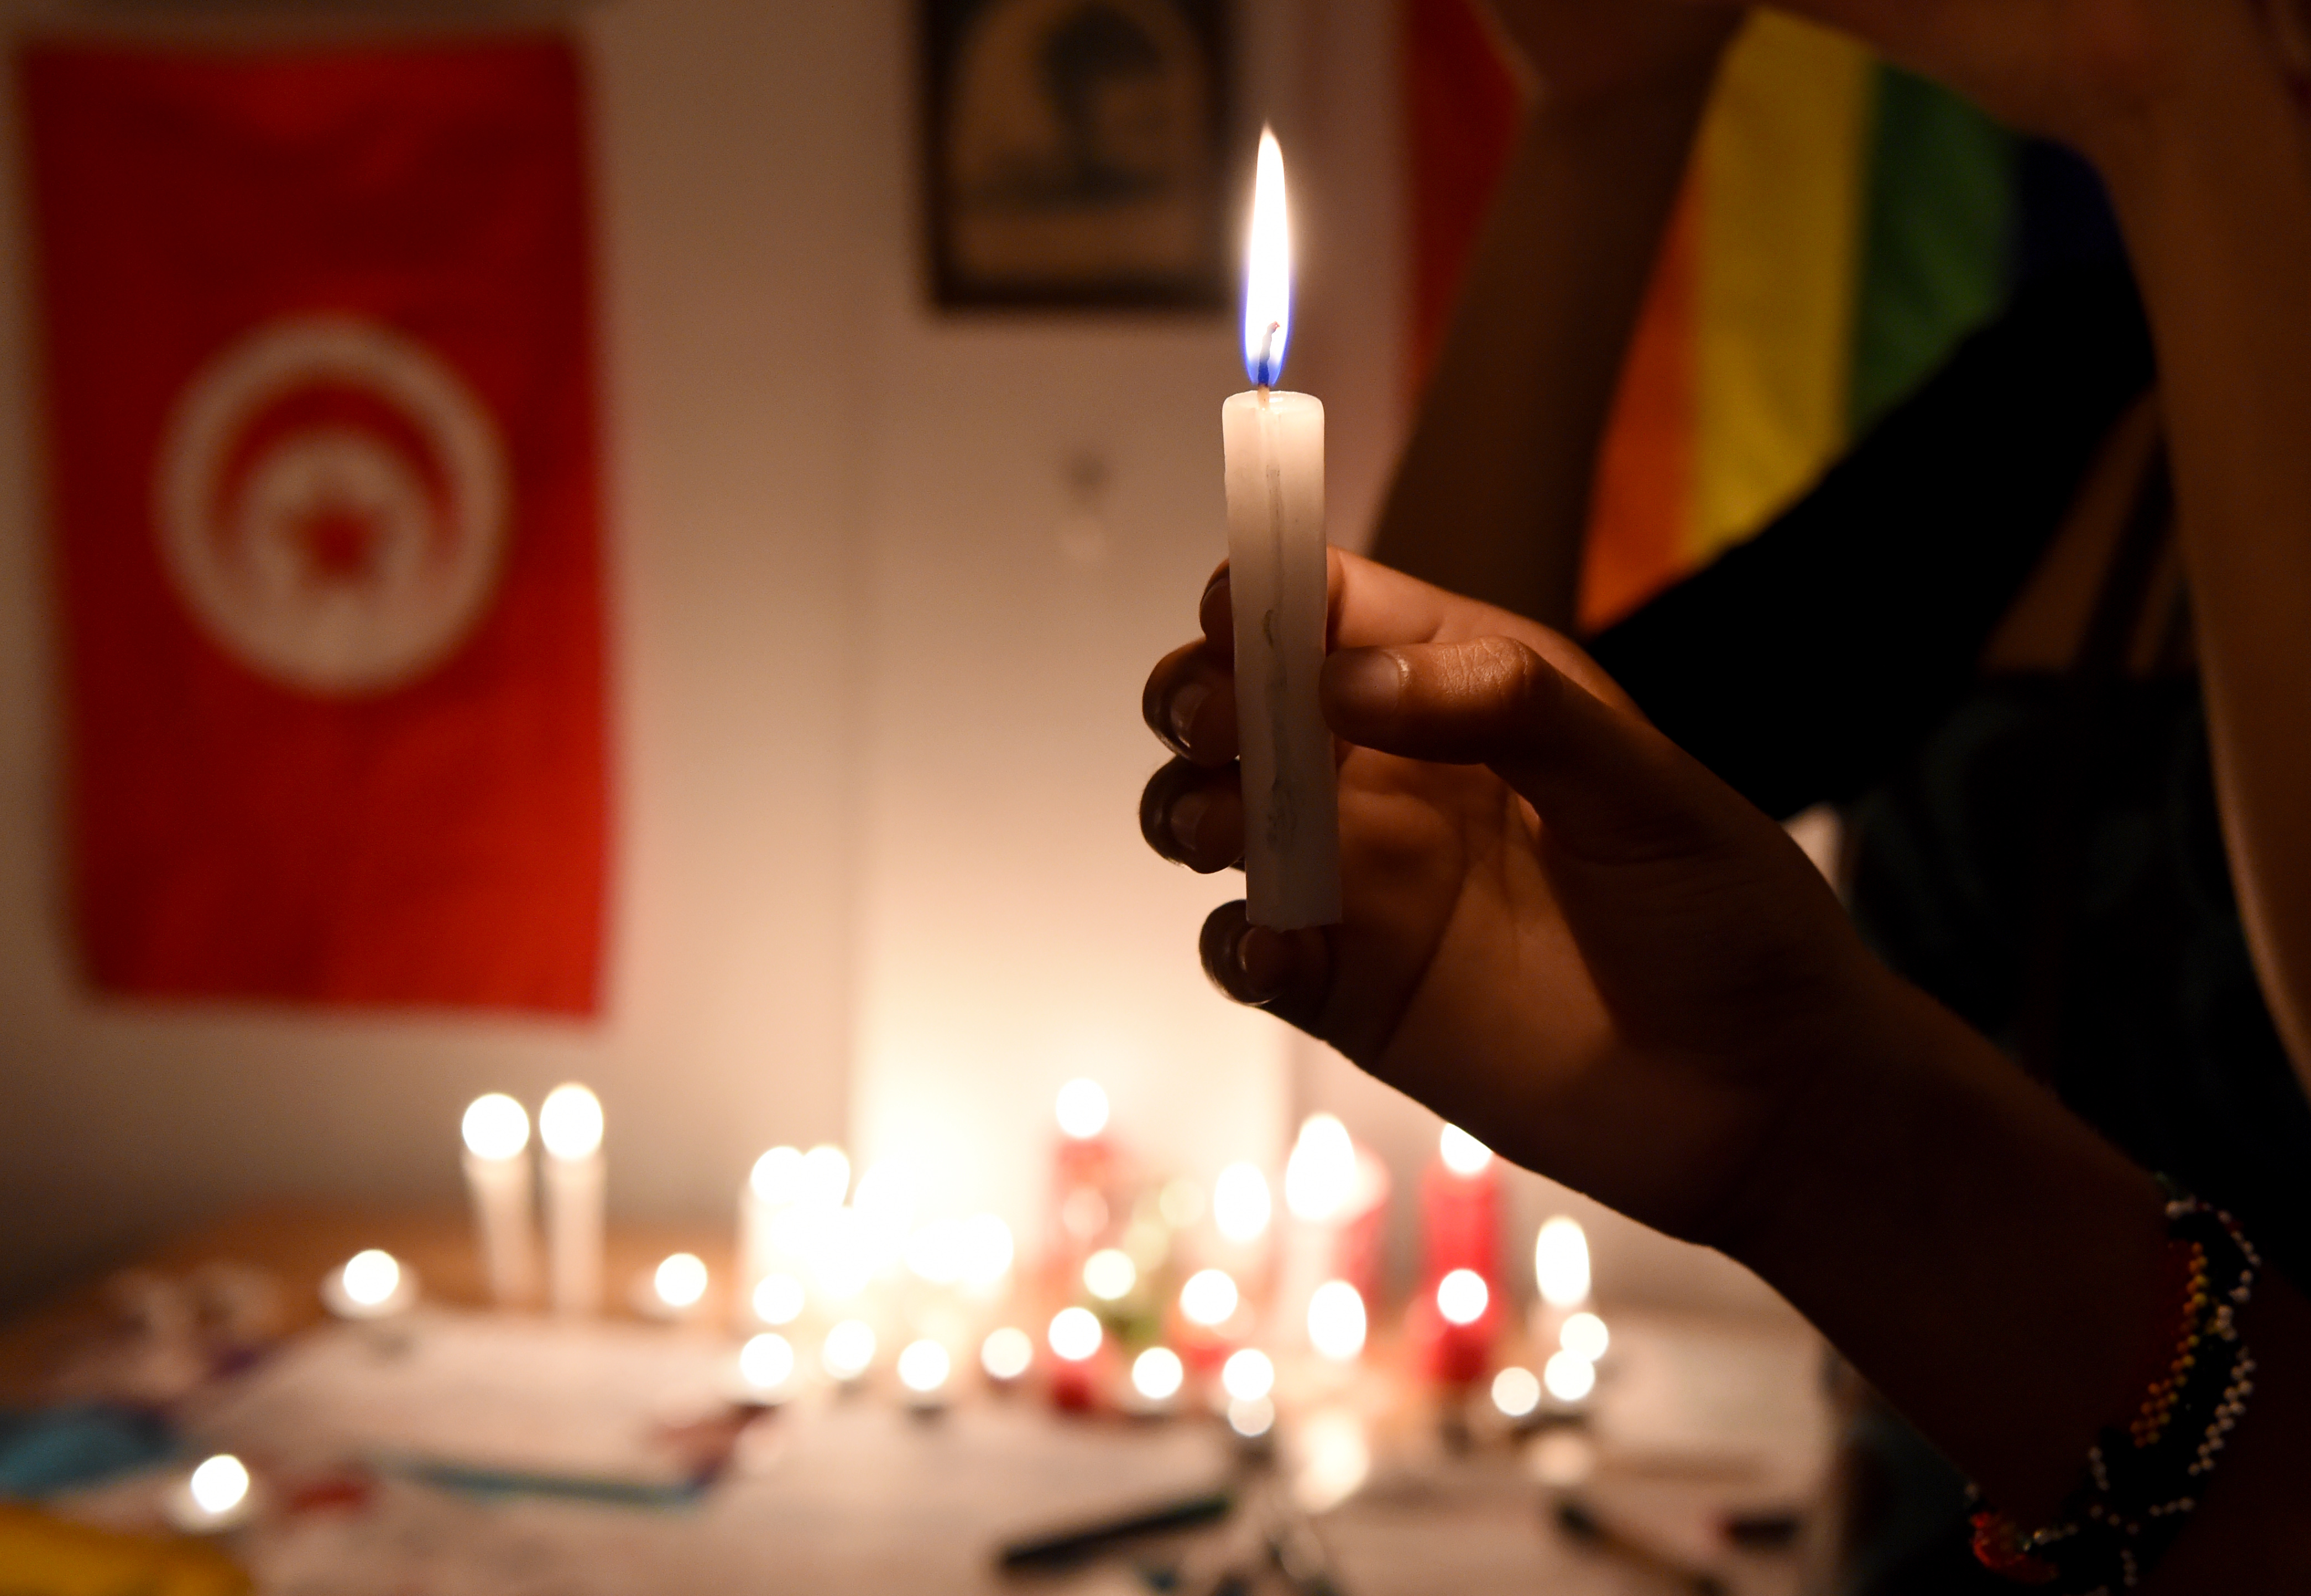 Two men were jailed under the archaic sodomy laws in Tunisia